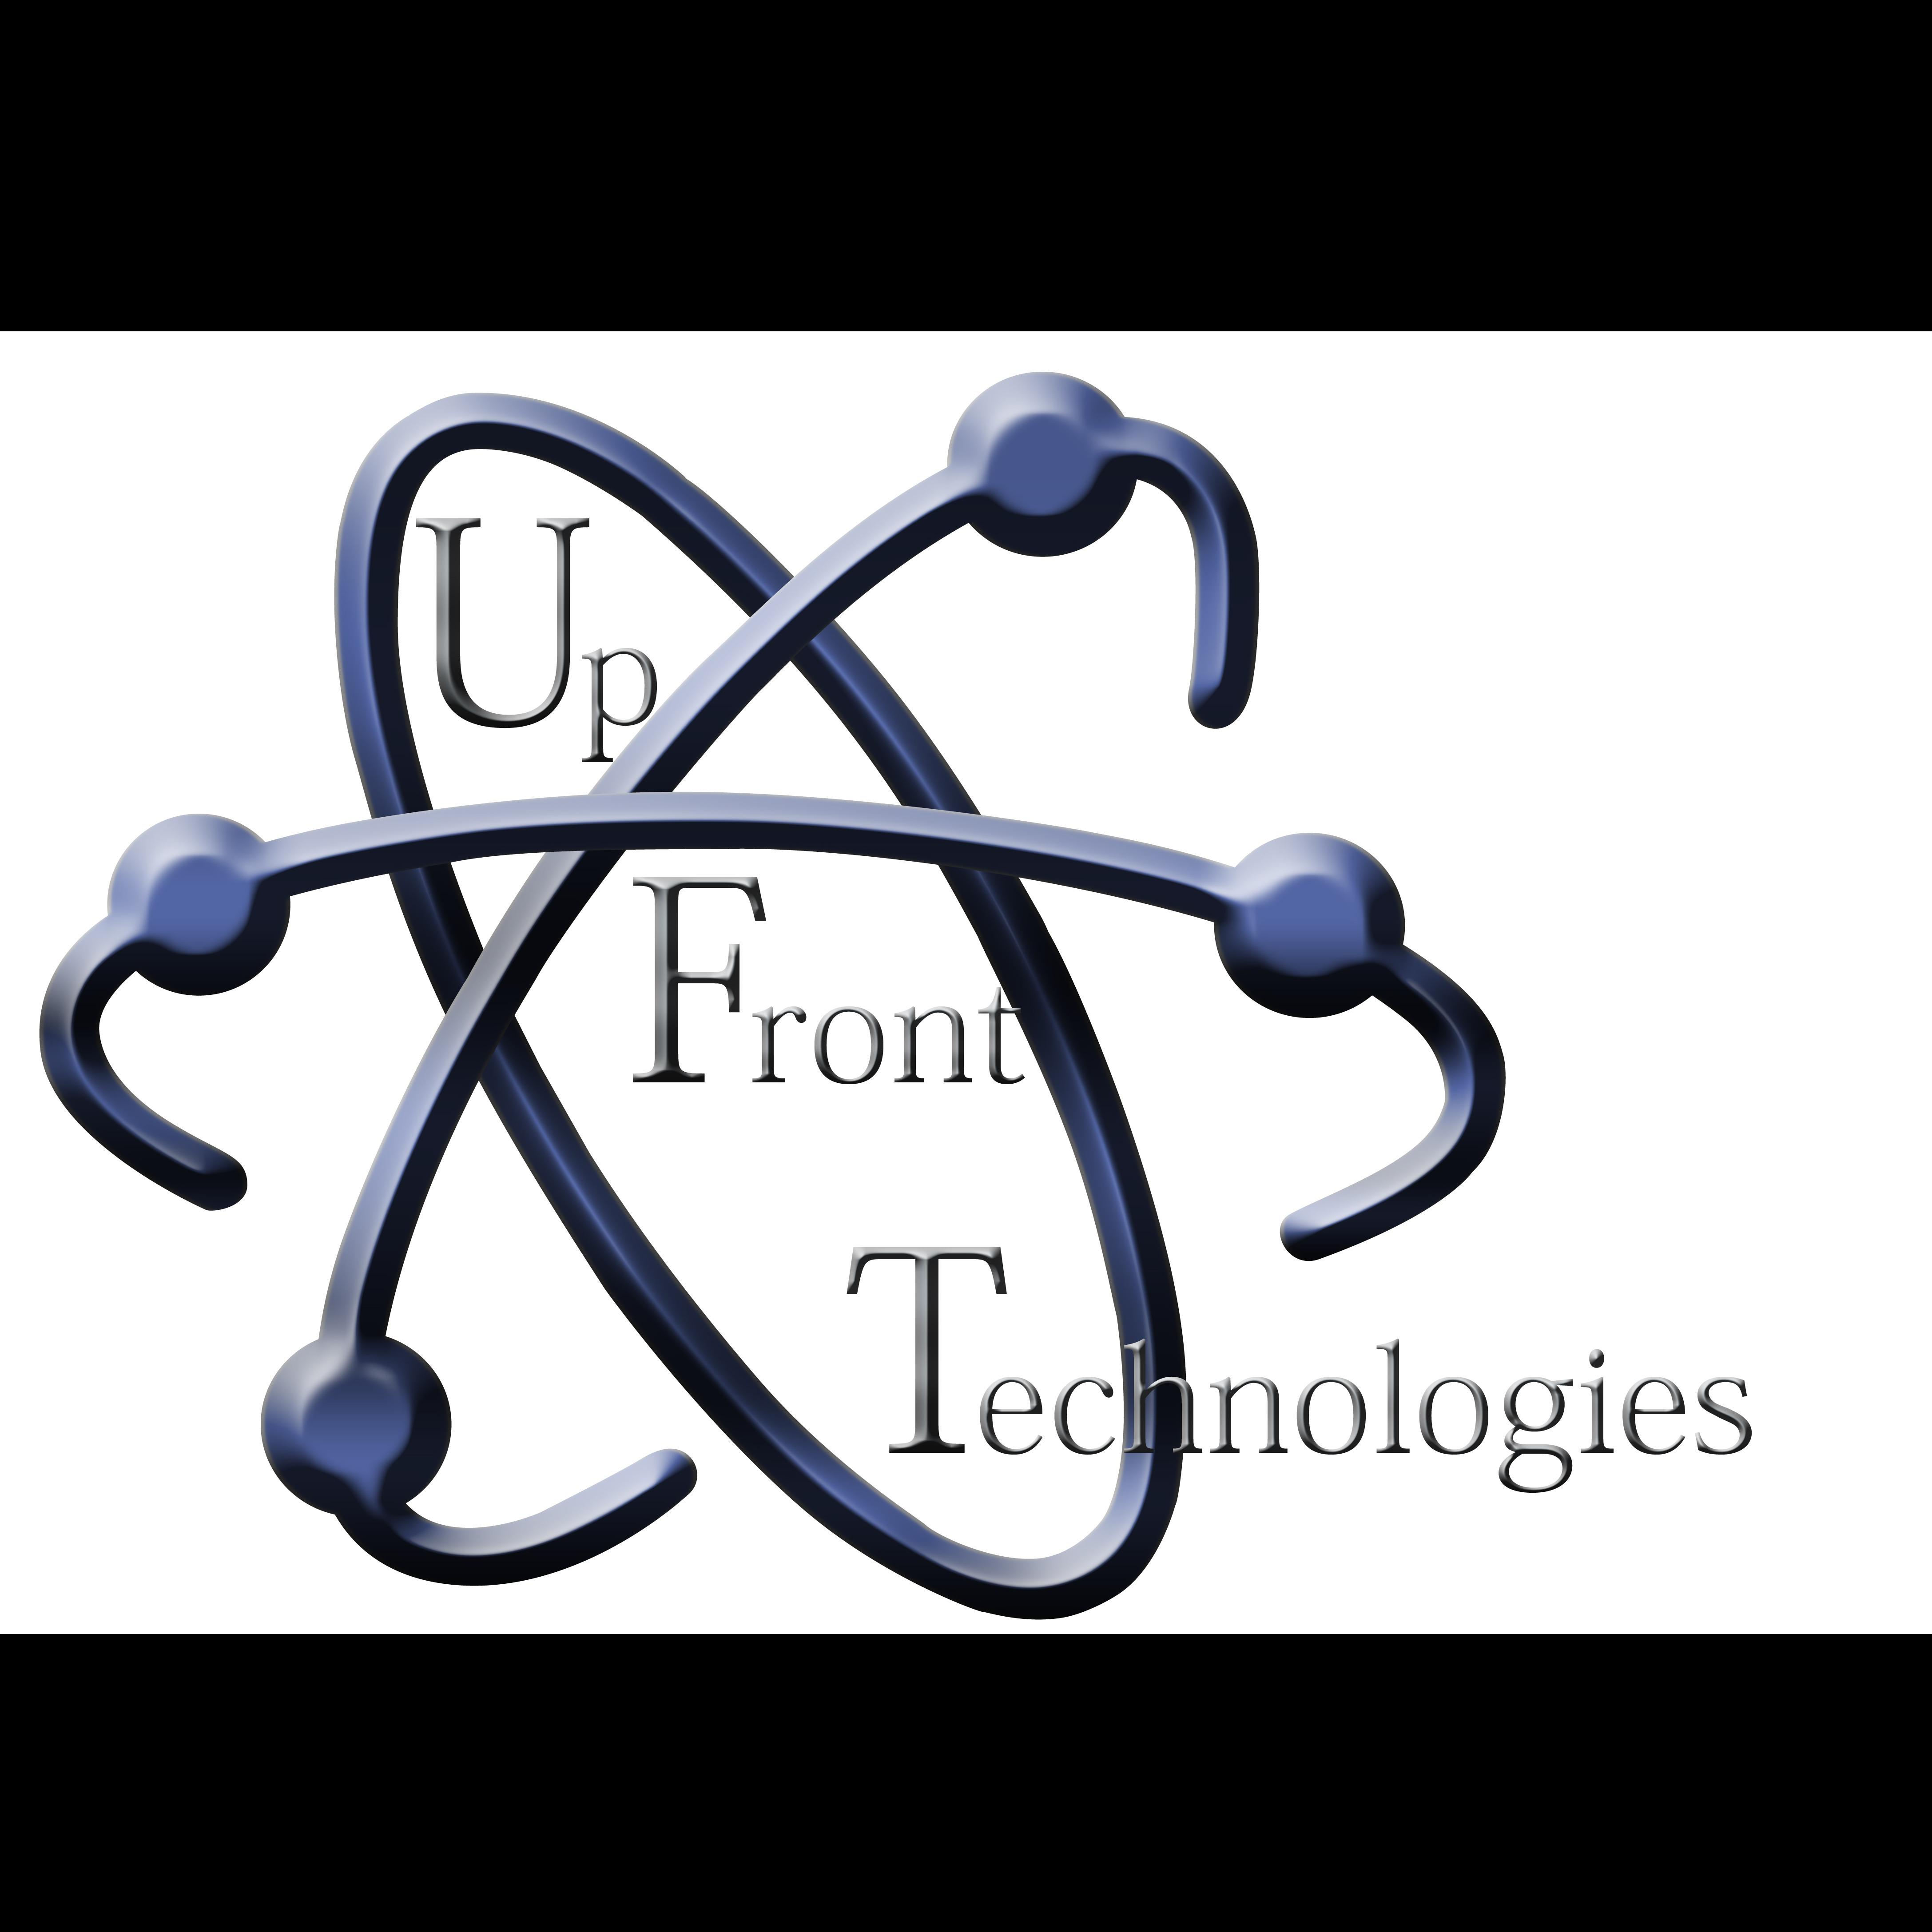 image of Upfront Technologies, Inc